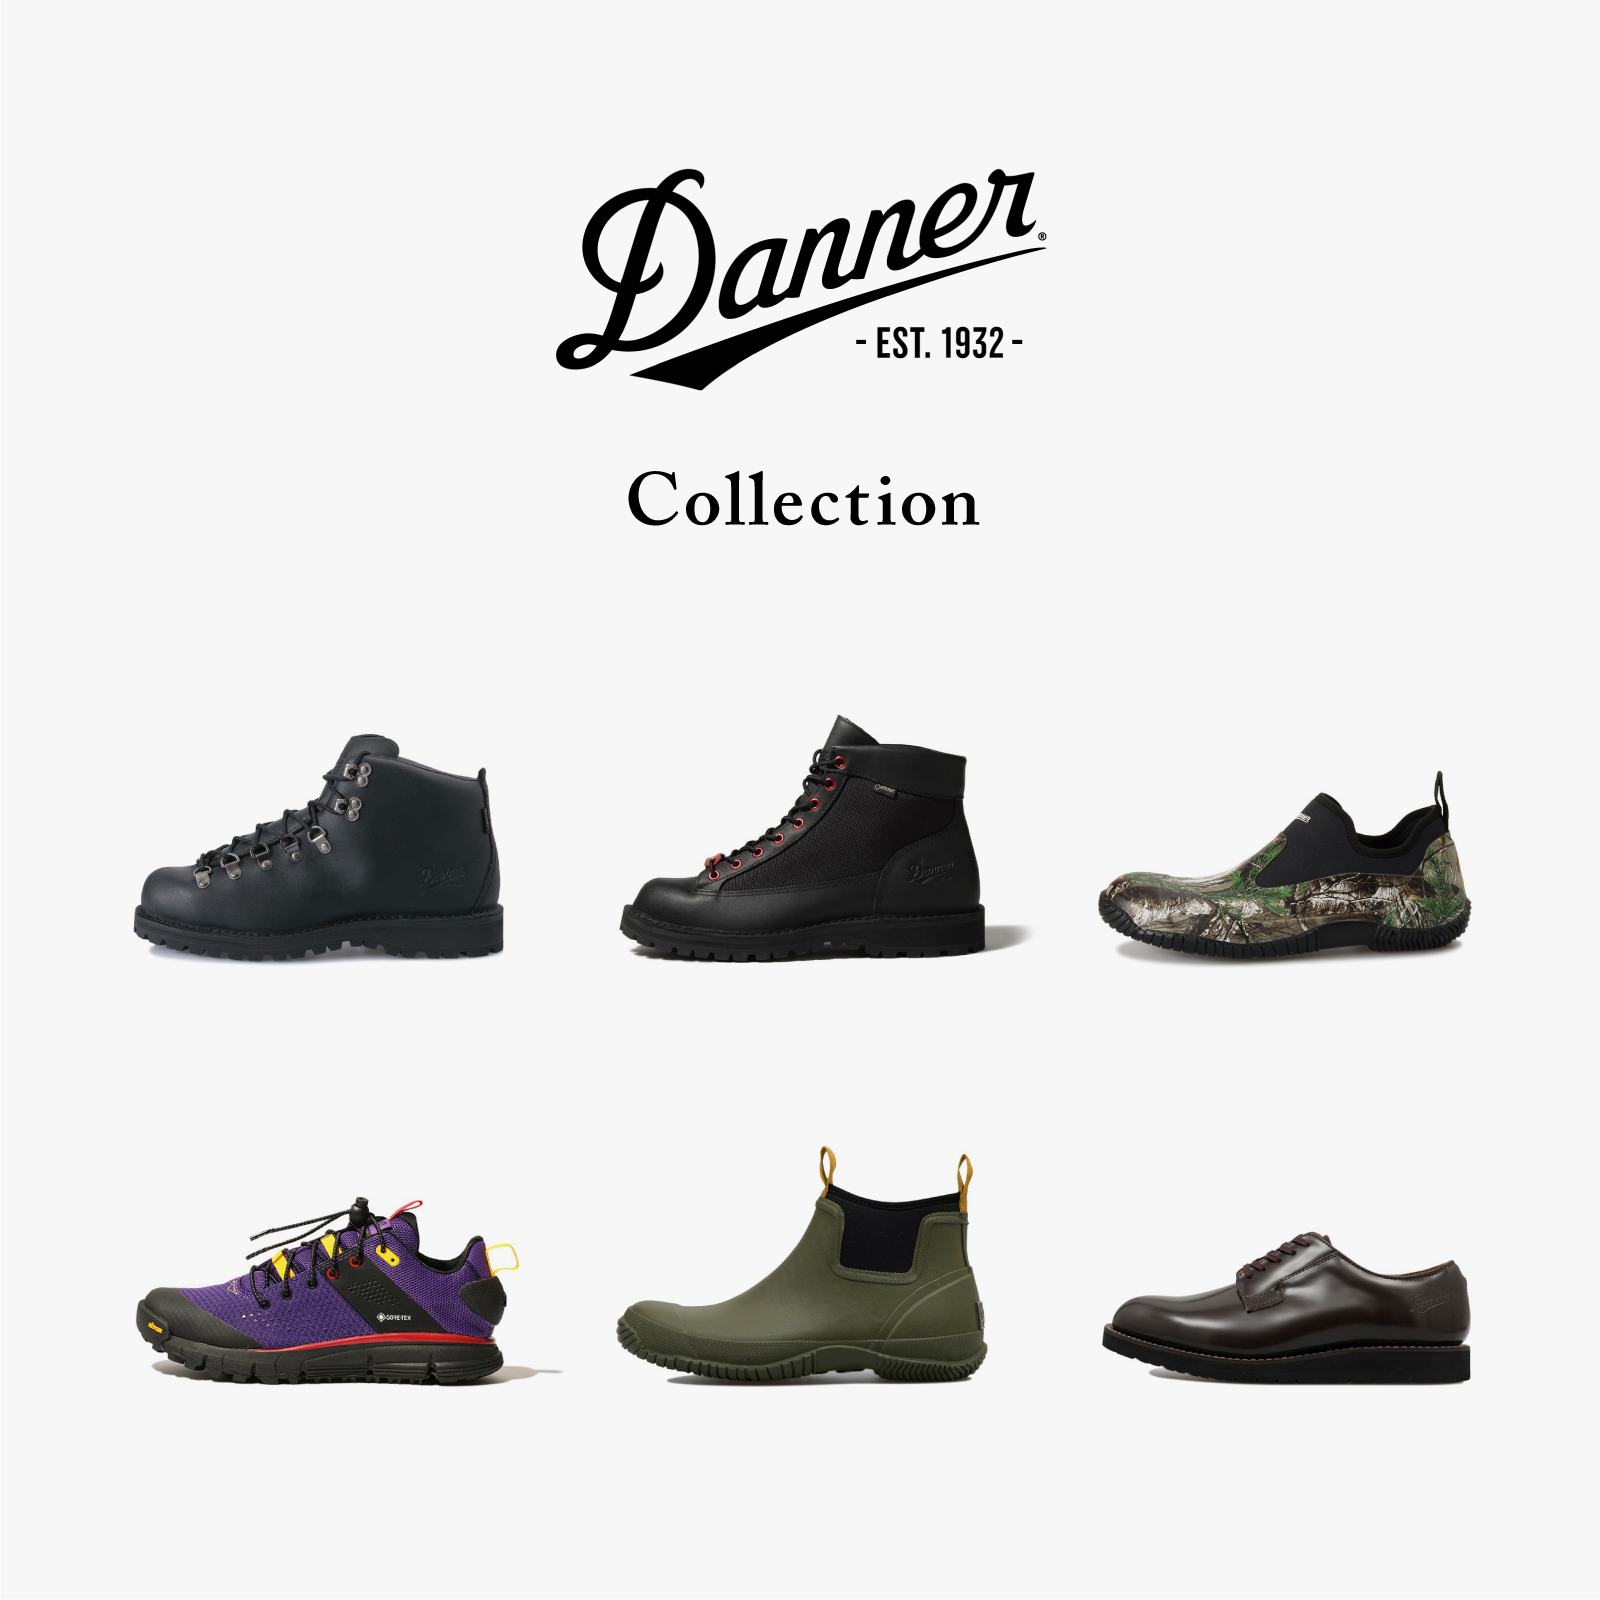 【sp】DannerCollection